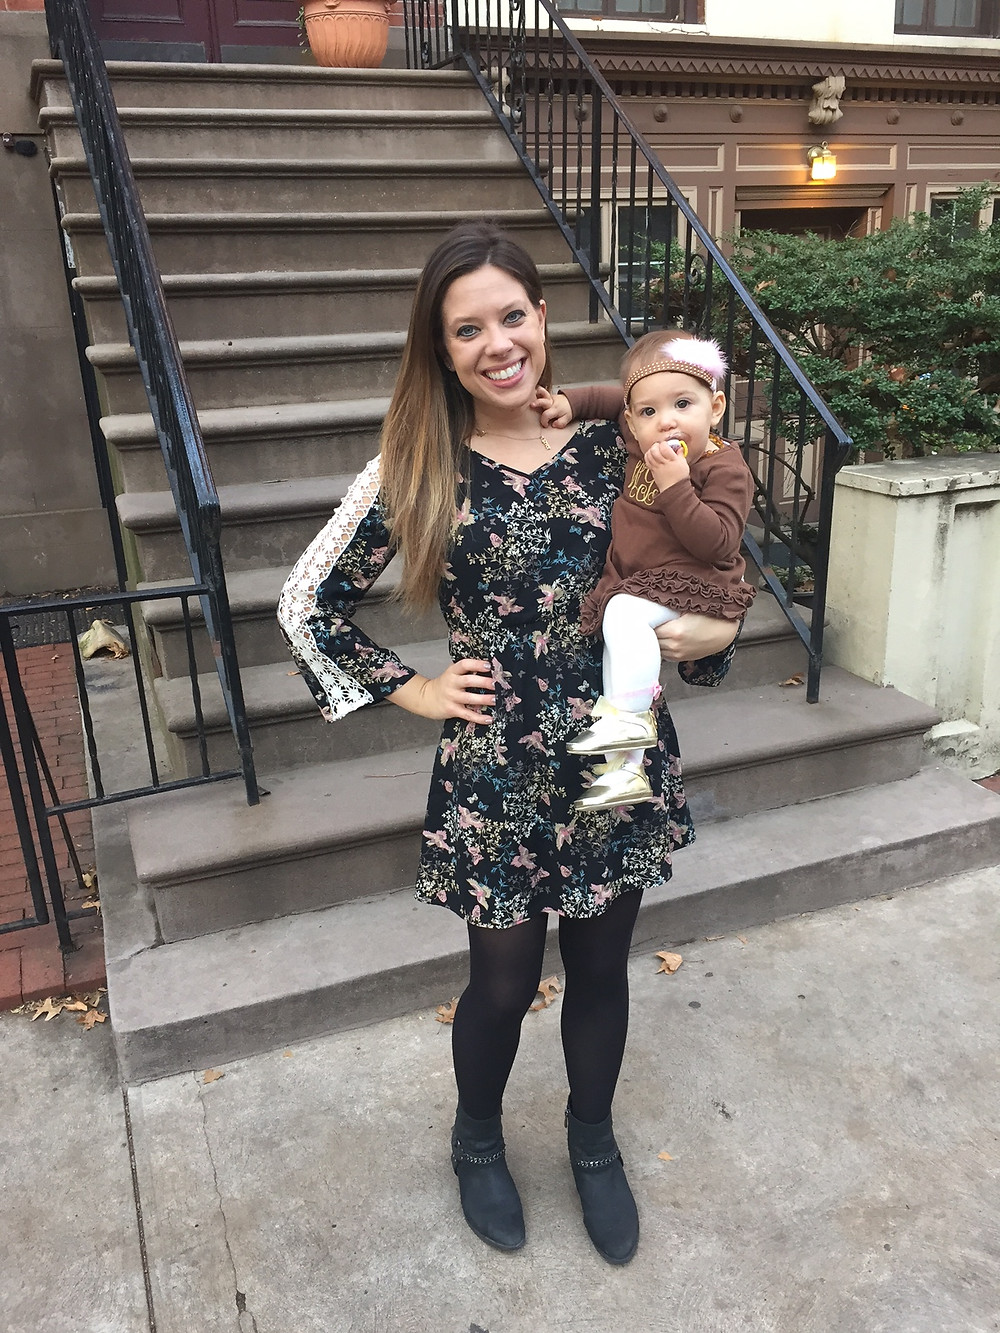 floral-print-dress-blogger-goals-love-this-baby-jersey-city-moms